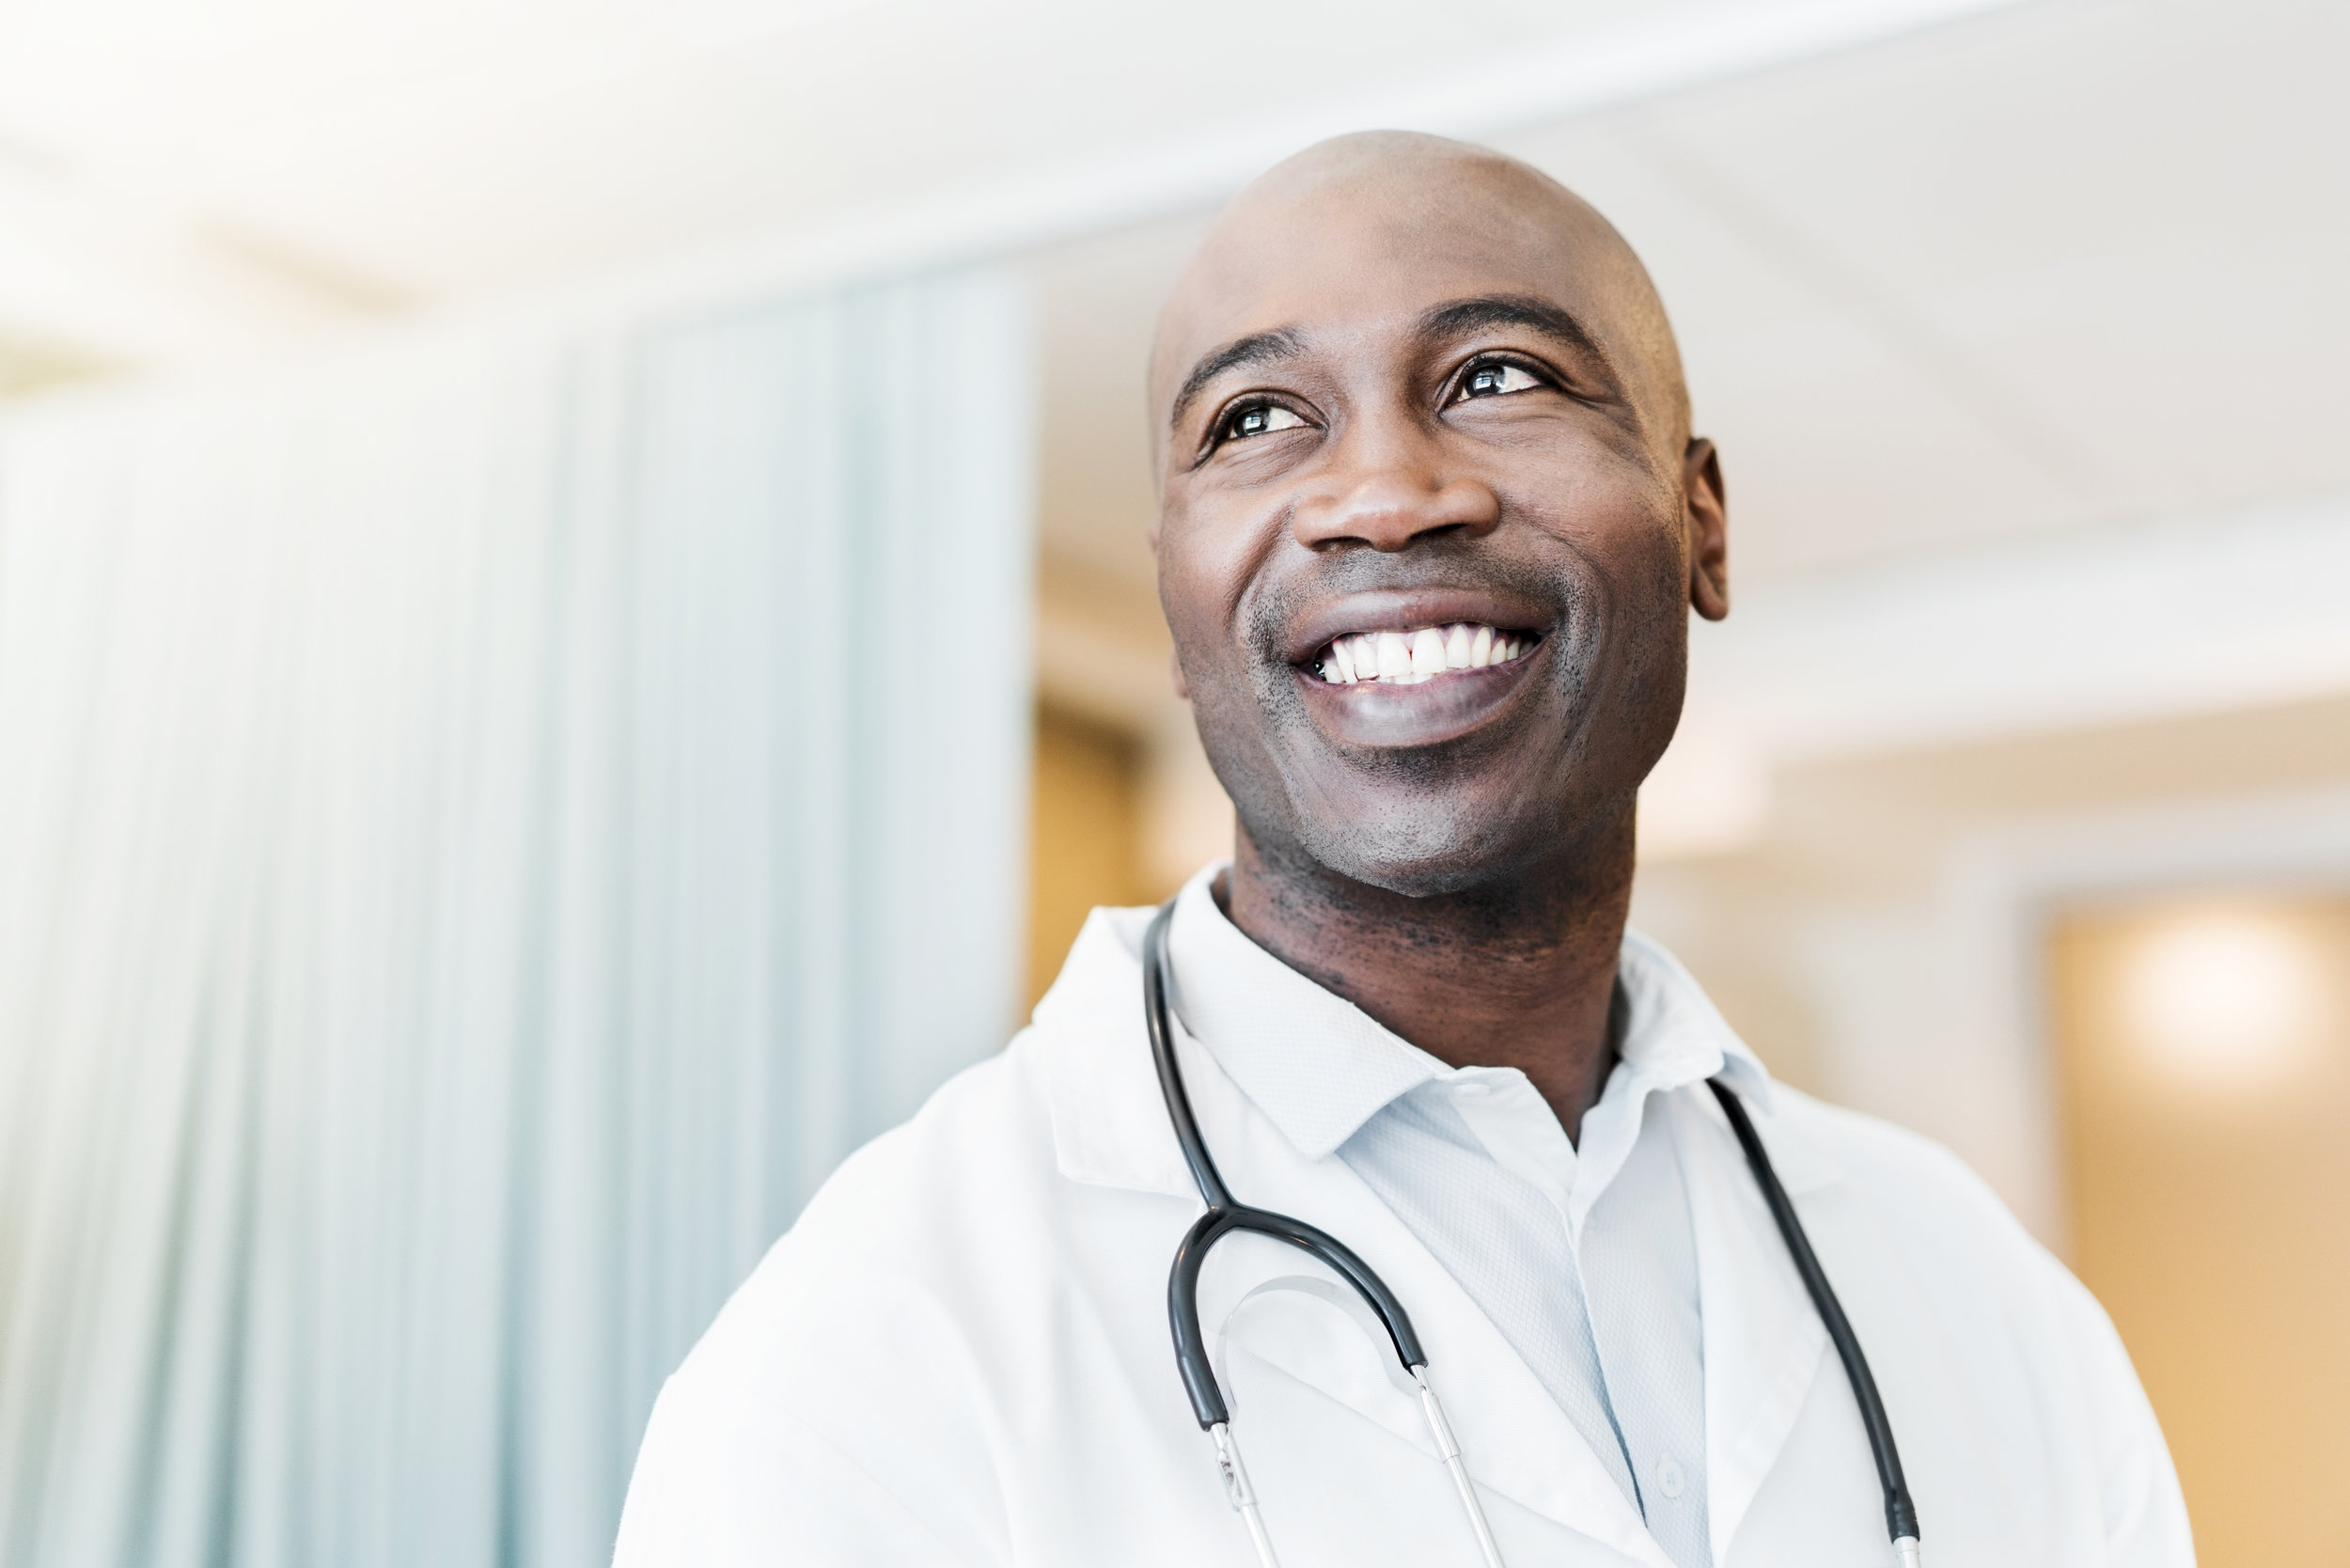 Choosing Locum Tenens - With so many choices for locum tenens, choose an agency partner who listens and is committed to finding the right fit. One who offers superior protection with occurrence malpractice insurance. And one who delivers personalized service in every interaction. That's Locums Choice.